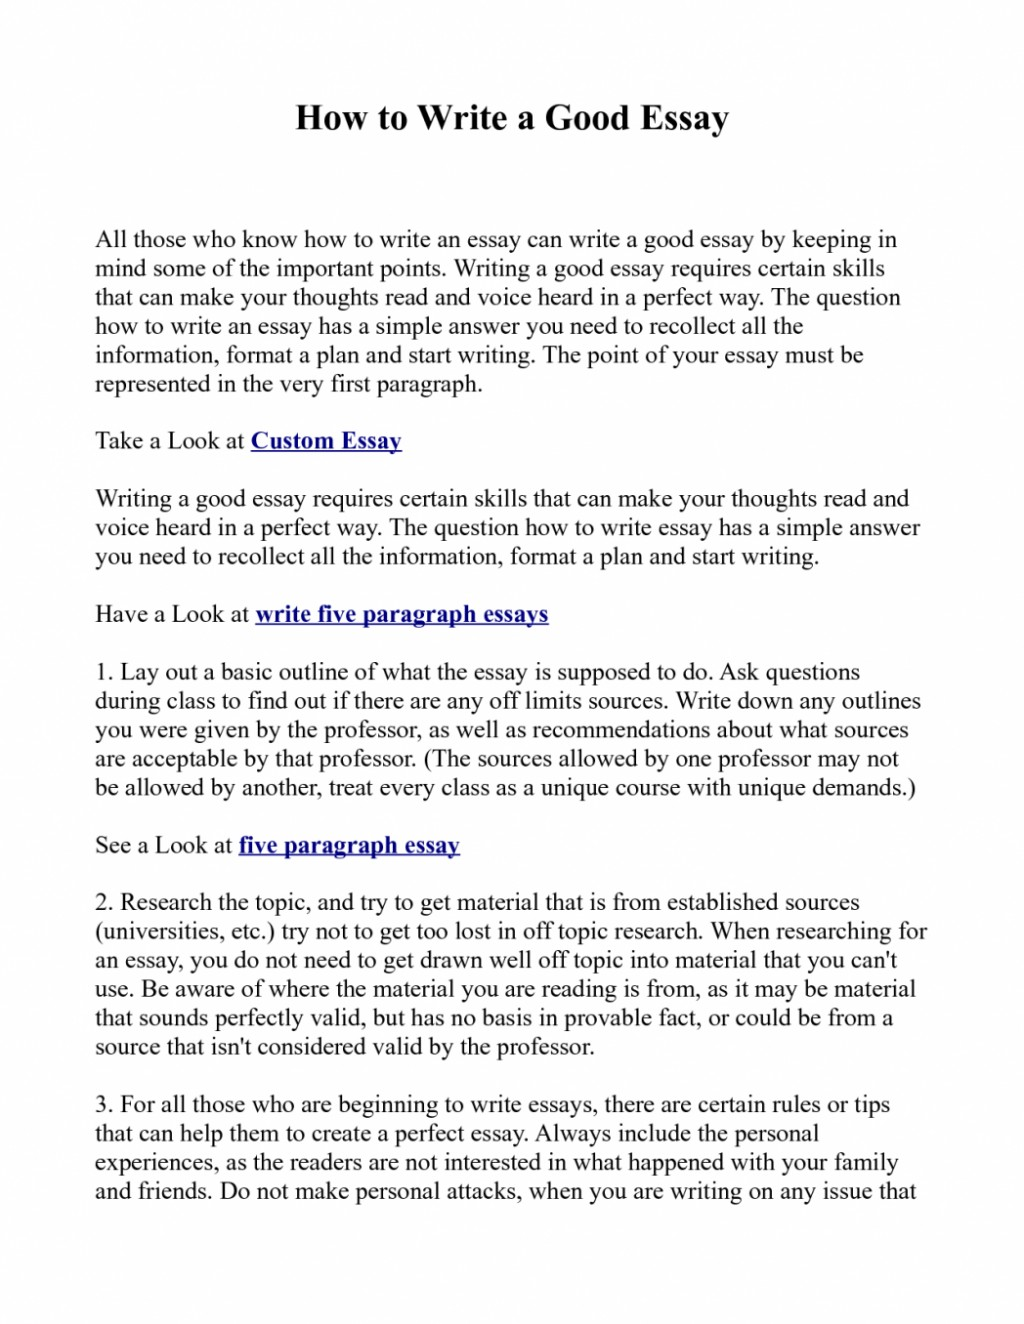 006 Essay Example How To Write Great Essays An Excellent The Perfect Easy Way Ex1id Best Awesome A Good Personal For Scholarships College Admissions Introduction Large